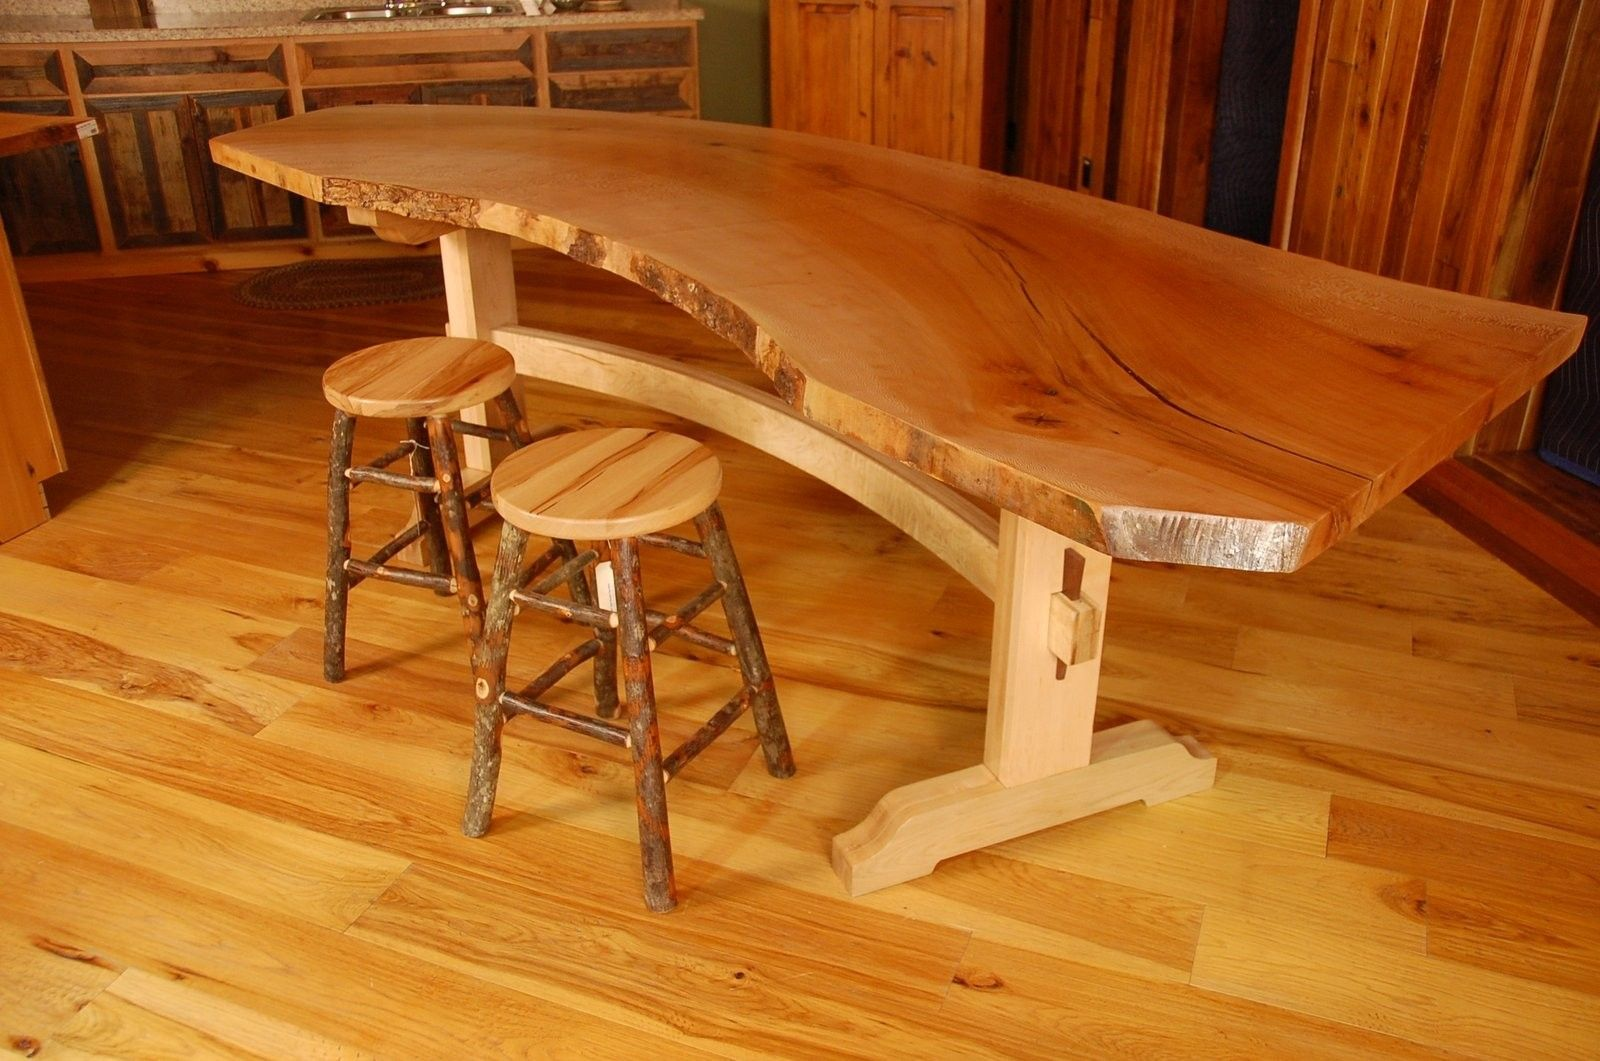 Handmade Sycamore Live Edge Slab Dining Table By Corey